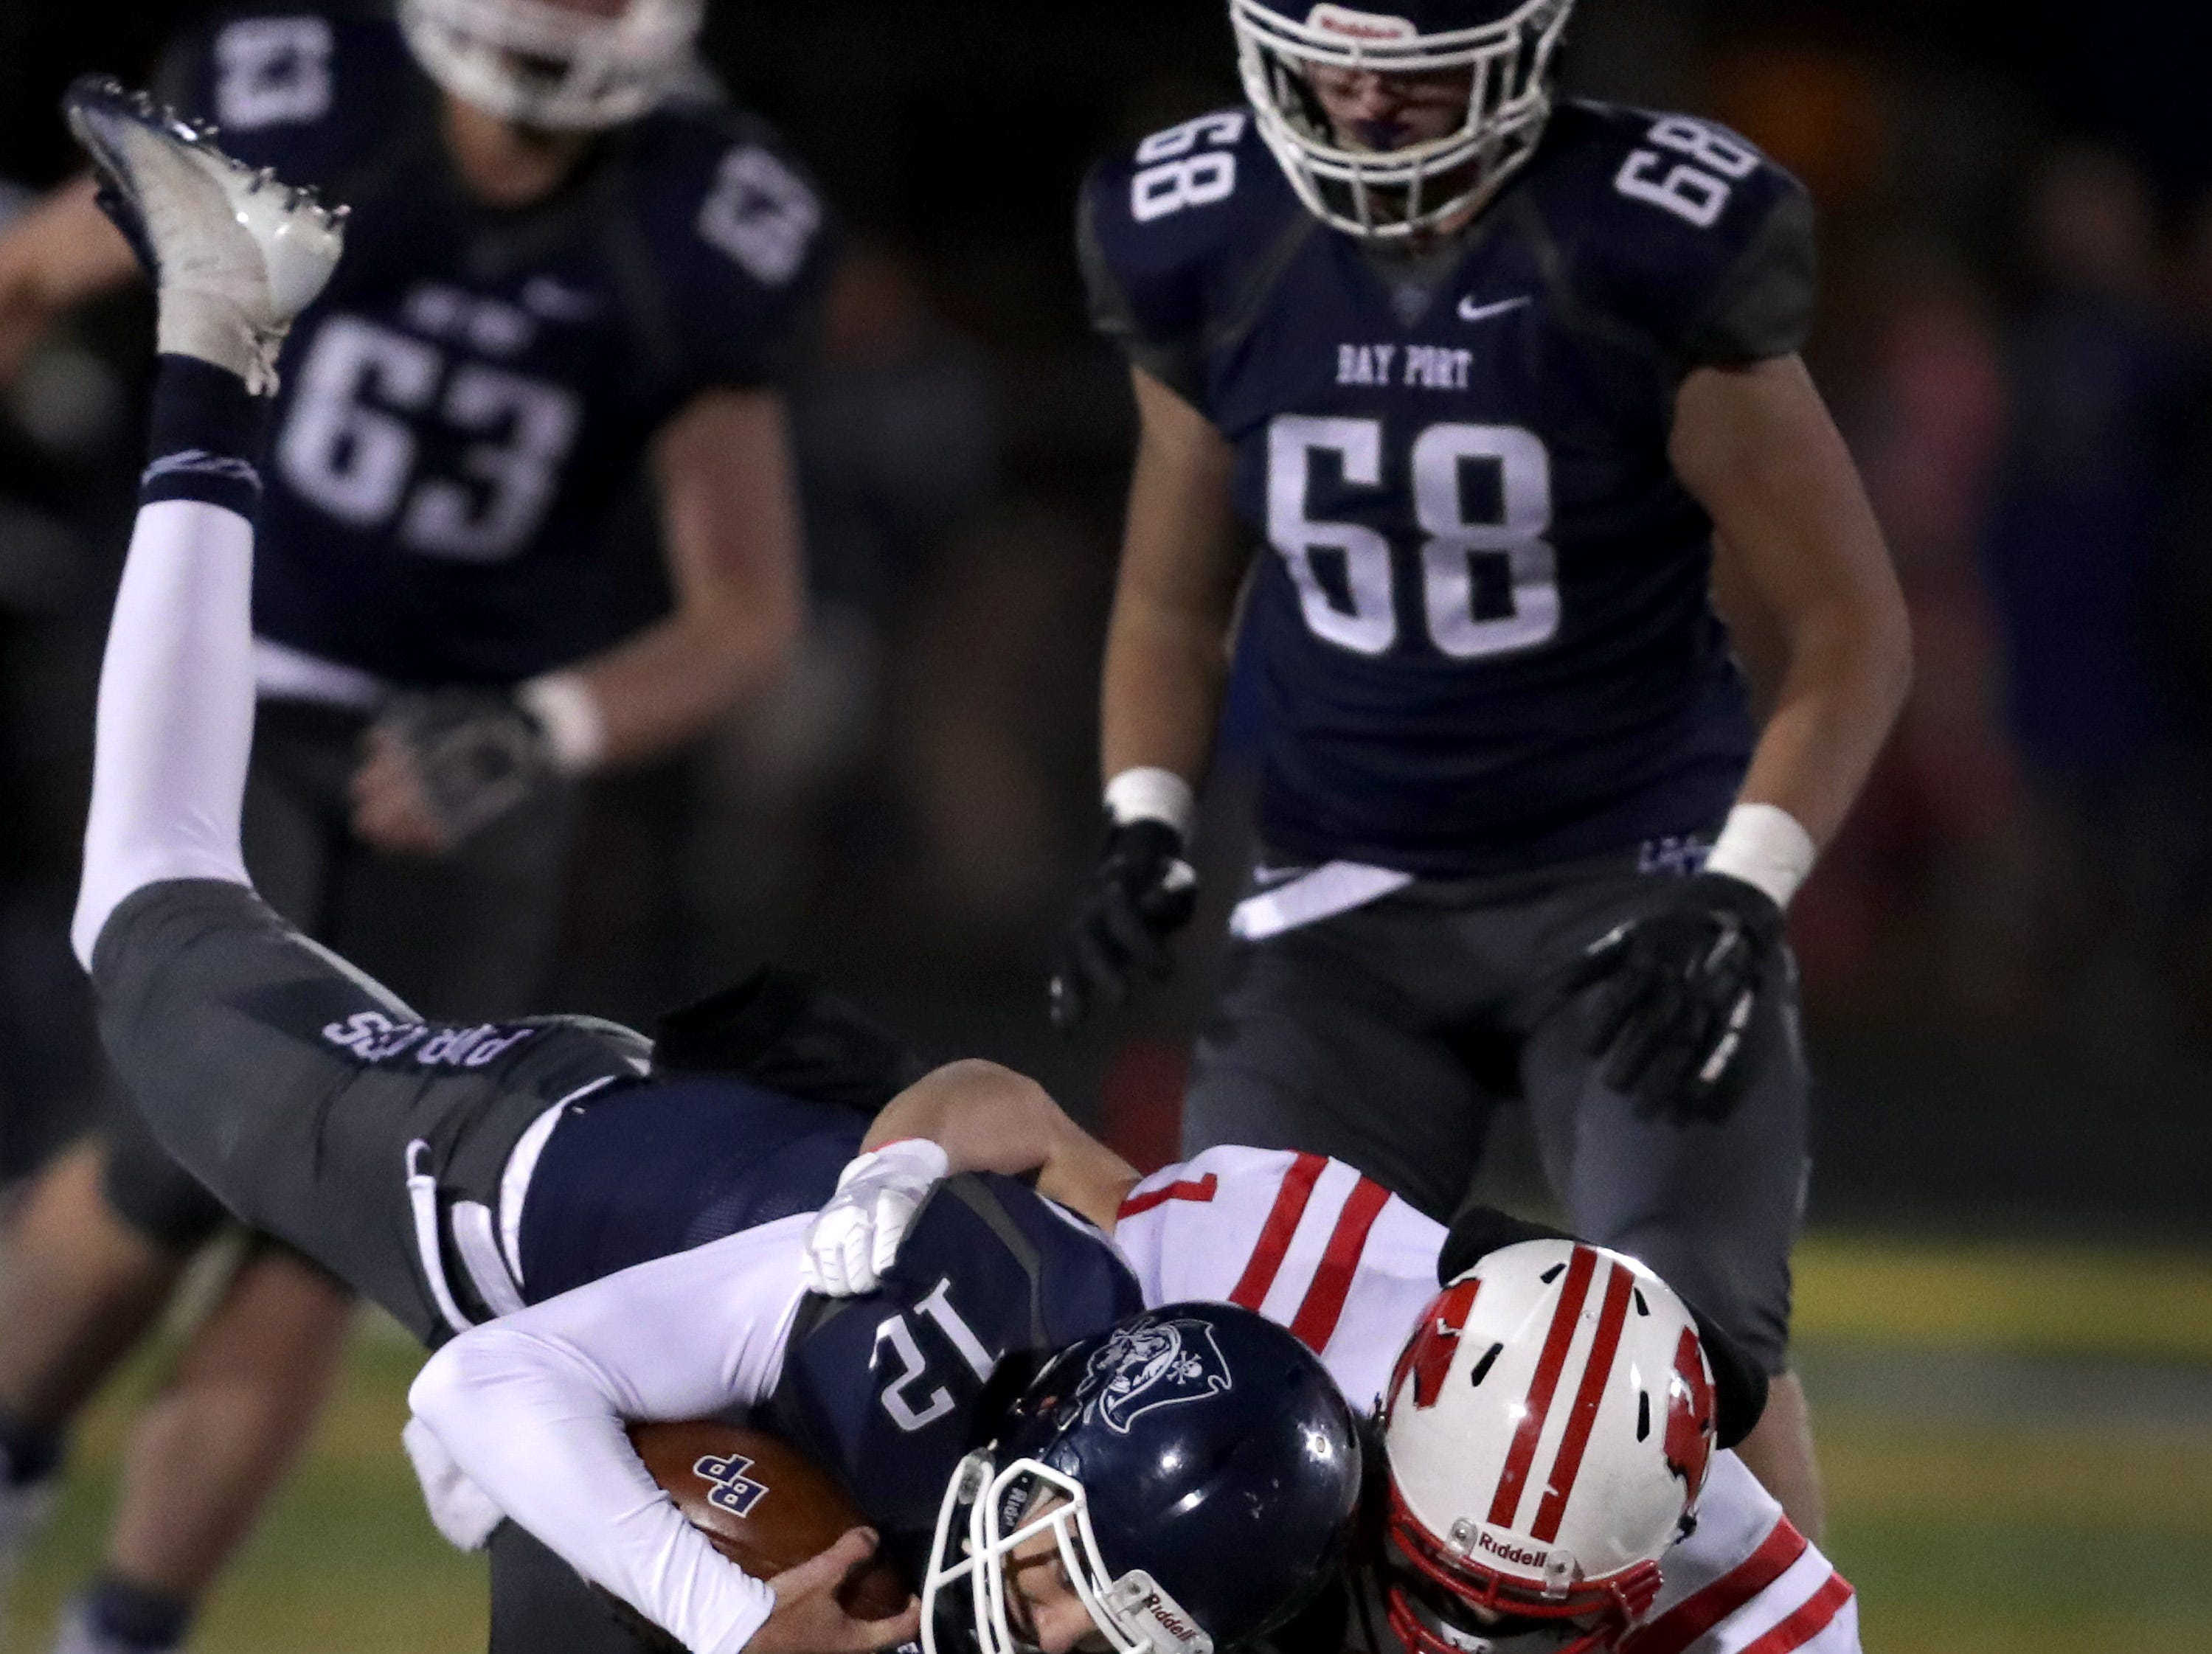 Bay Port High School's #12 Andrew Thomas is tackled by Kimberly High School's #1 Caleb Obermann during their WIAA Division 1 state quarterfinal football game on Friday, November 2, 2018, in Suamico, Wis.  Kimberly defeated Bay Port 38 to 20. Wm. Glasheen/USA TODAY NETWORK-Wisconsin.